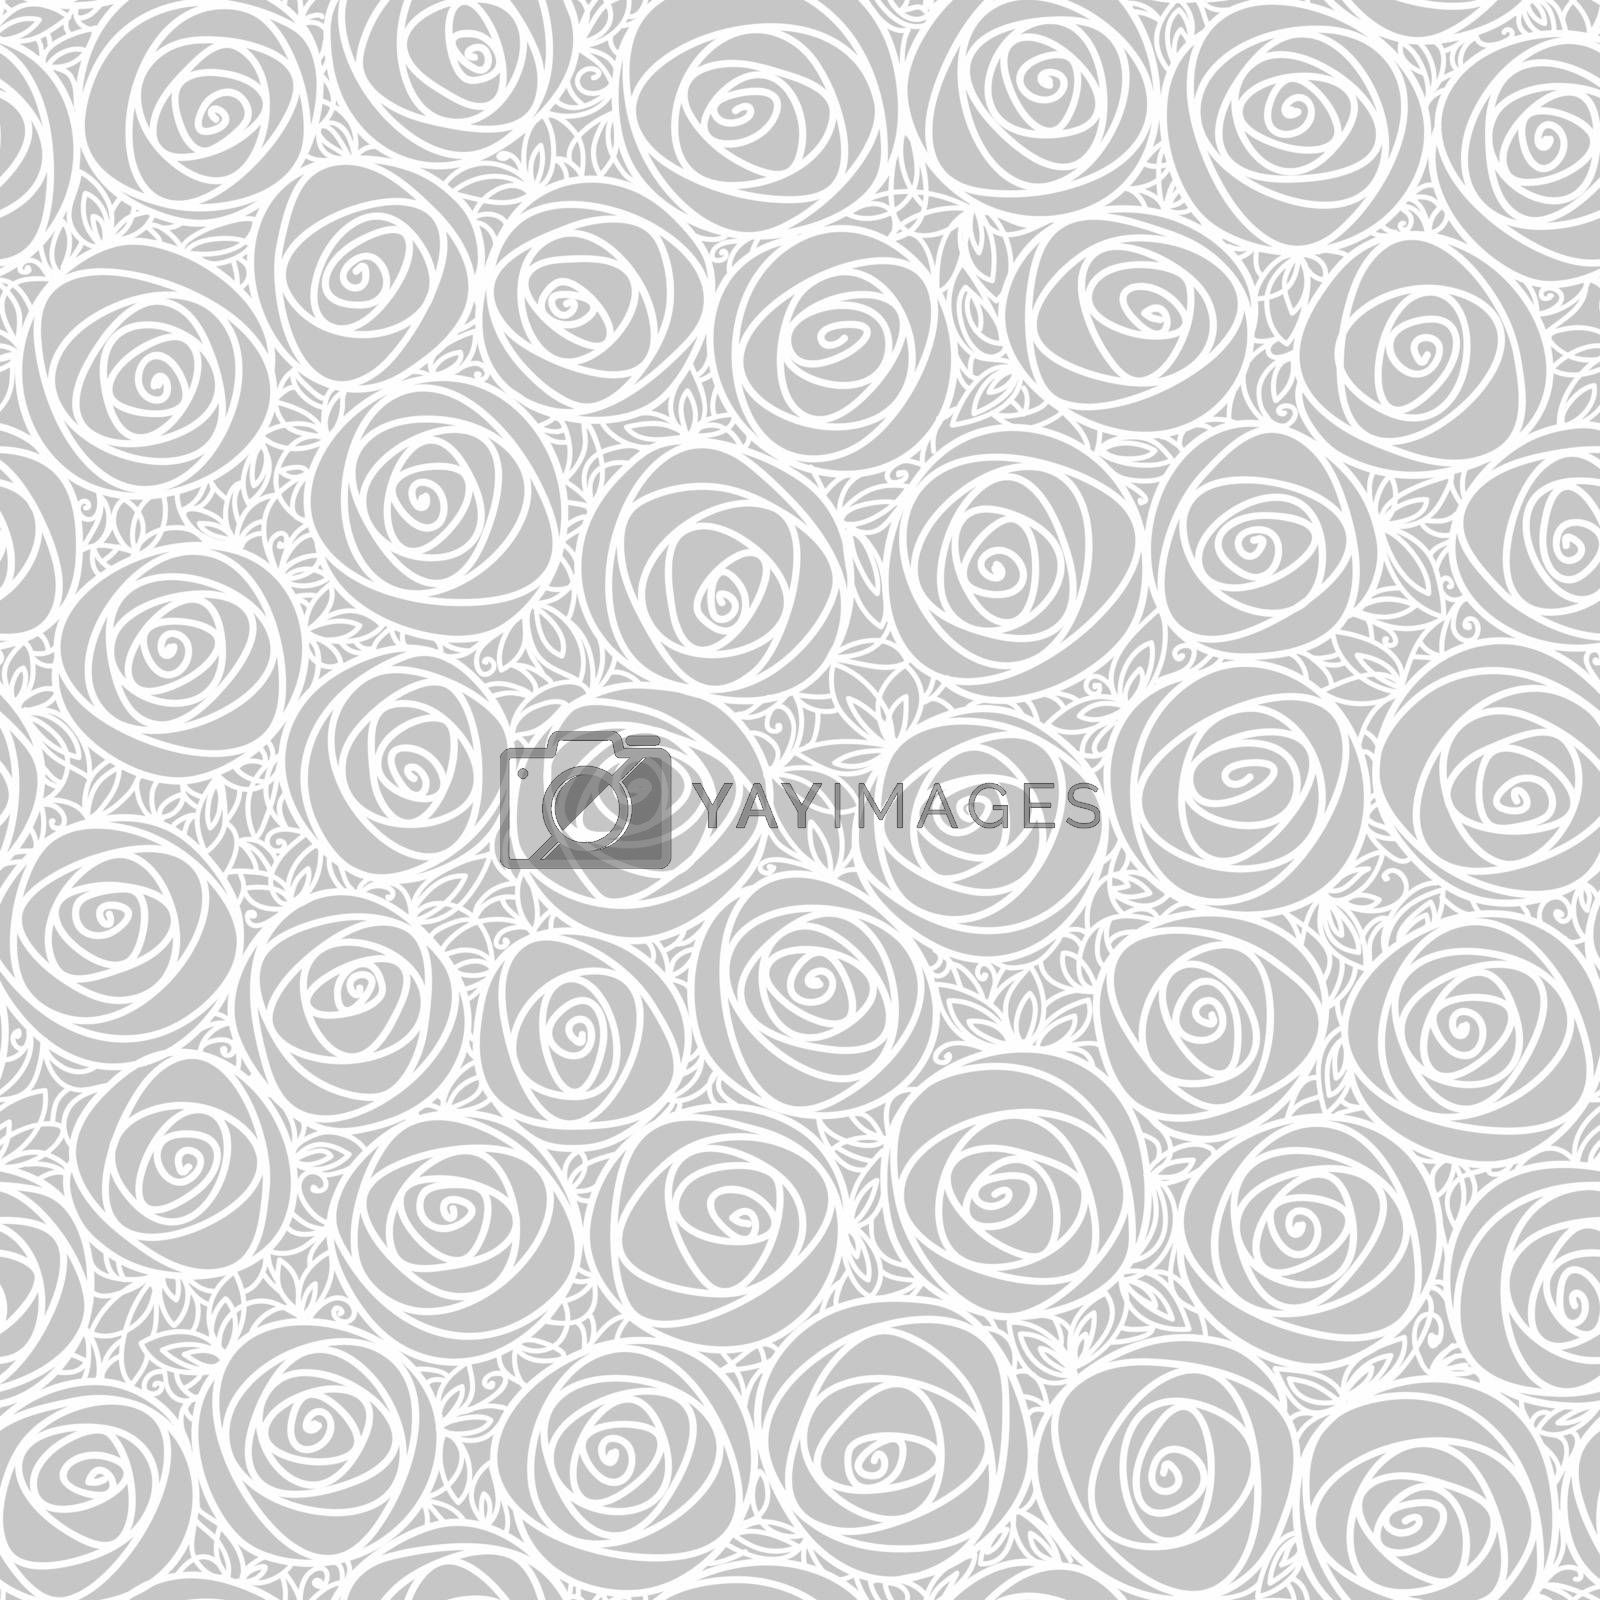 Light seamless floral pattern. Outline stylized roses. Abstract background. Doodle hand drawn line art design element.